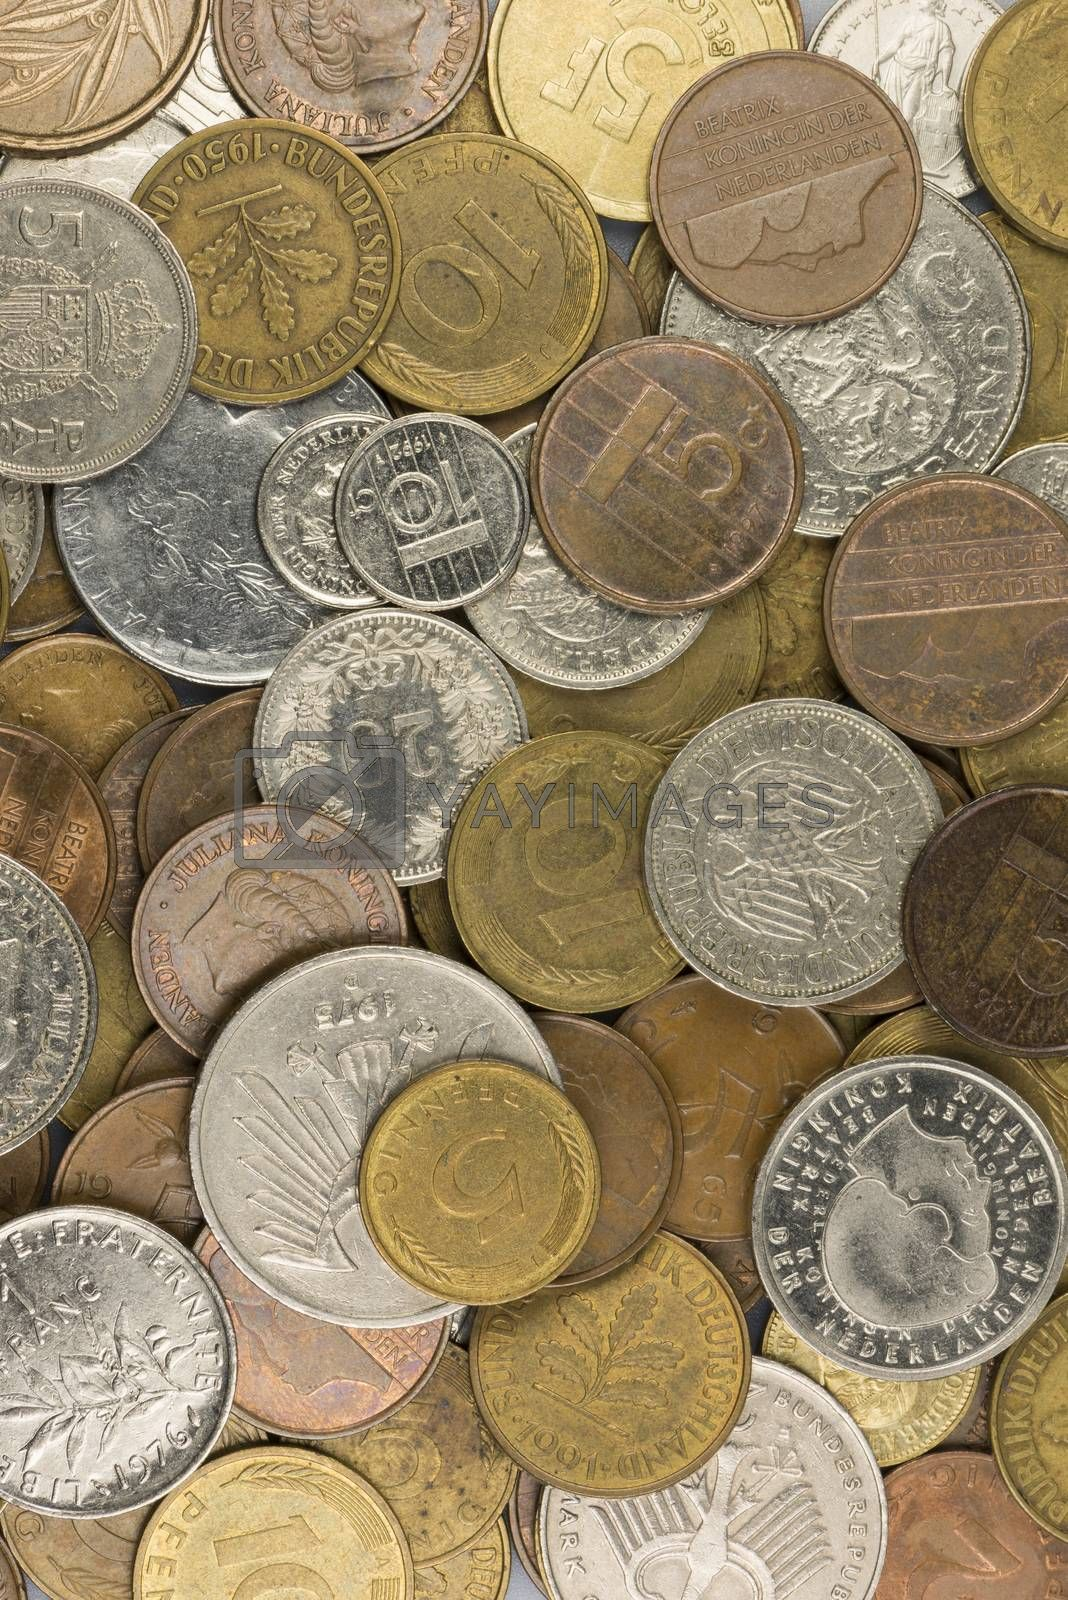 old European coins before the introduction of the Euro